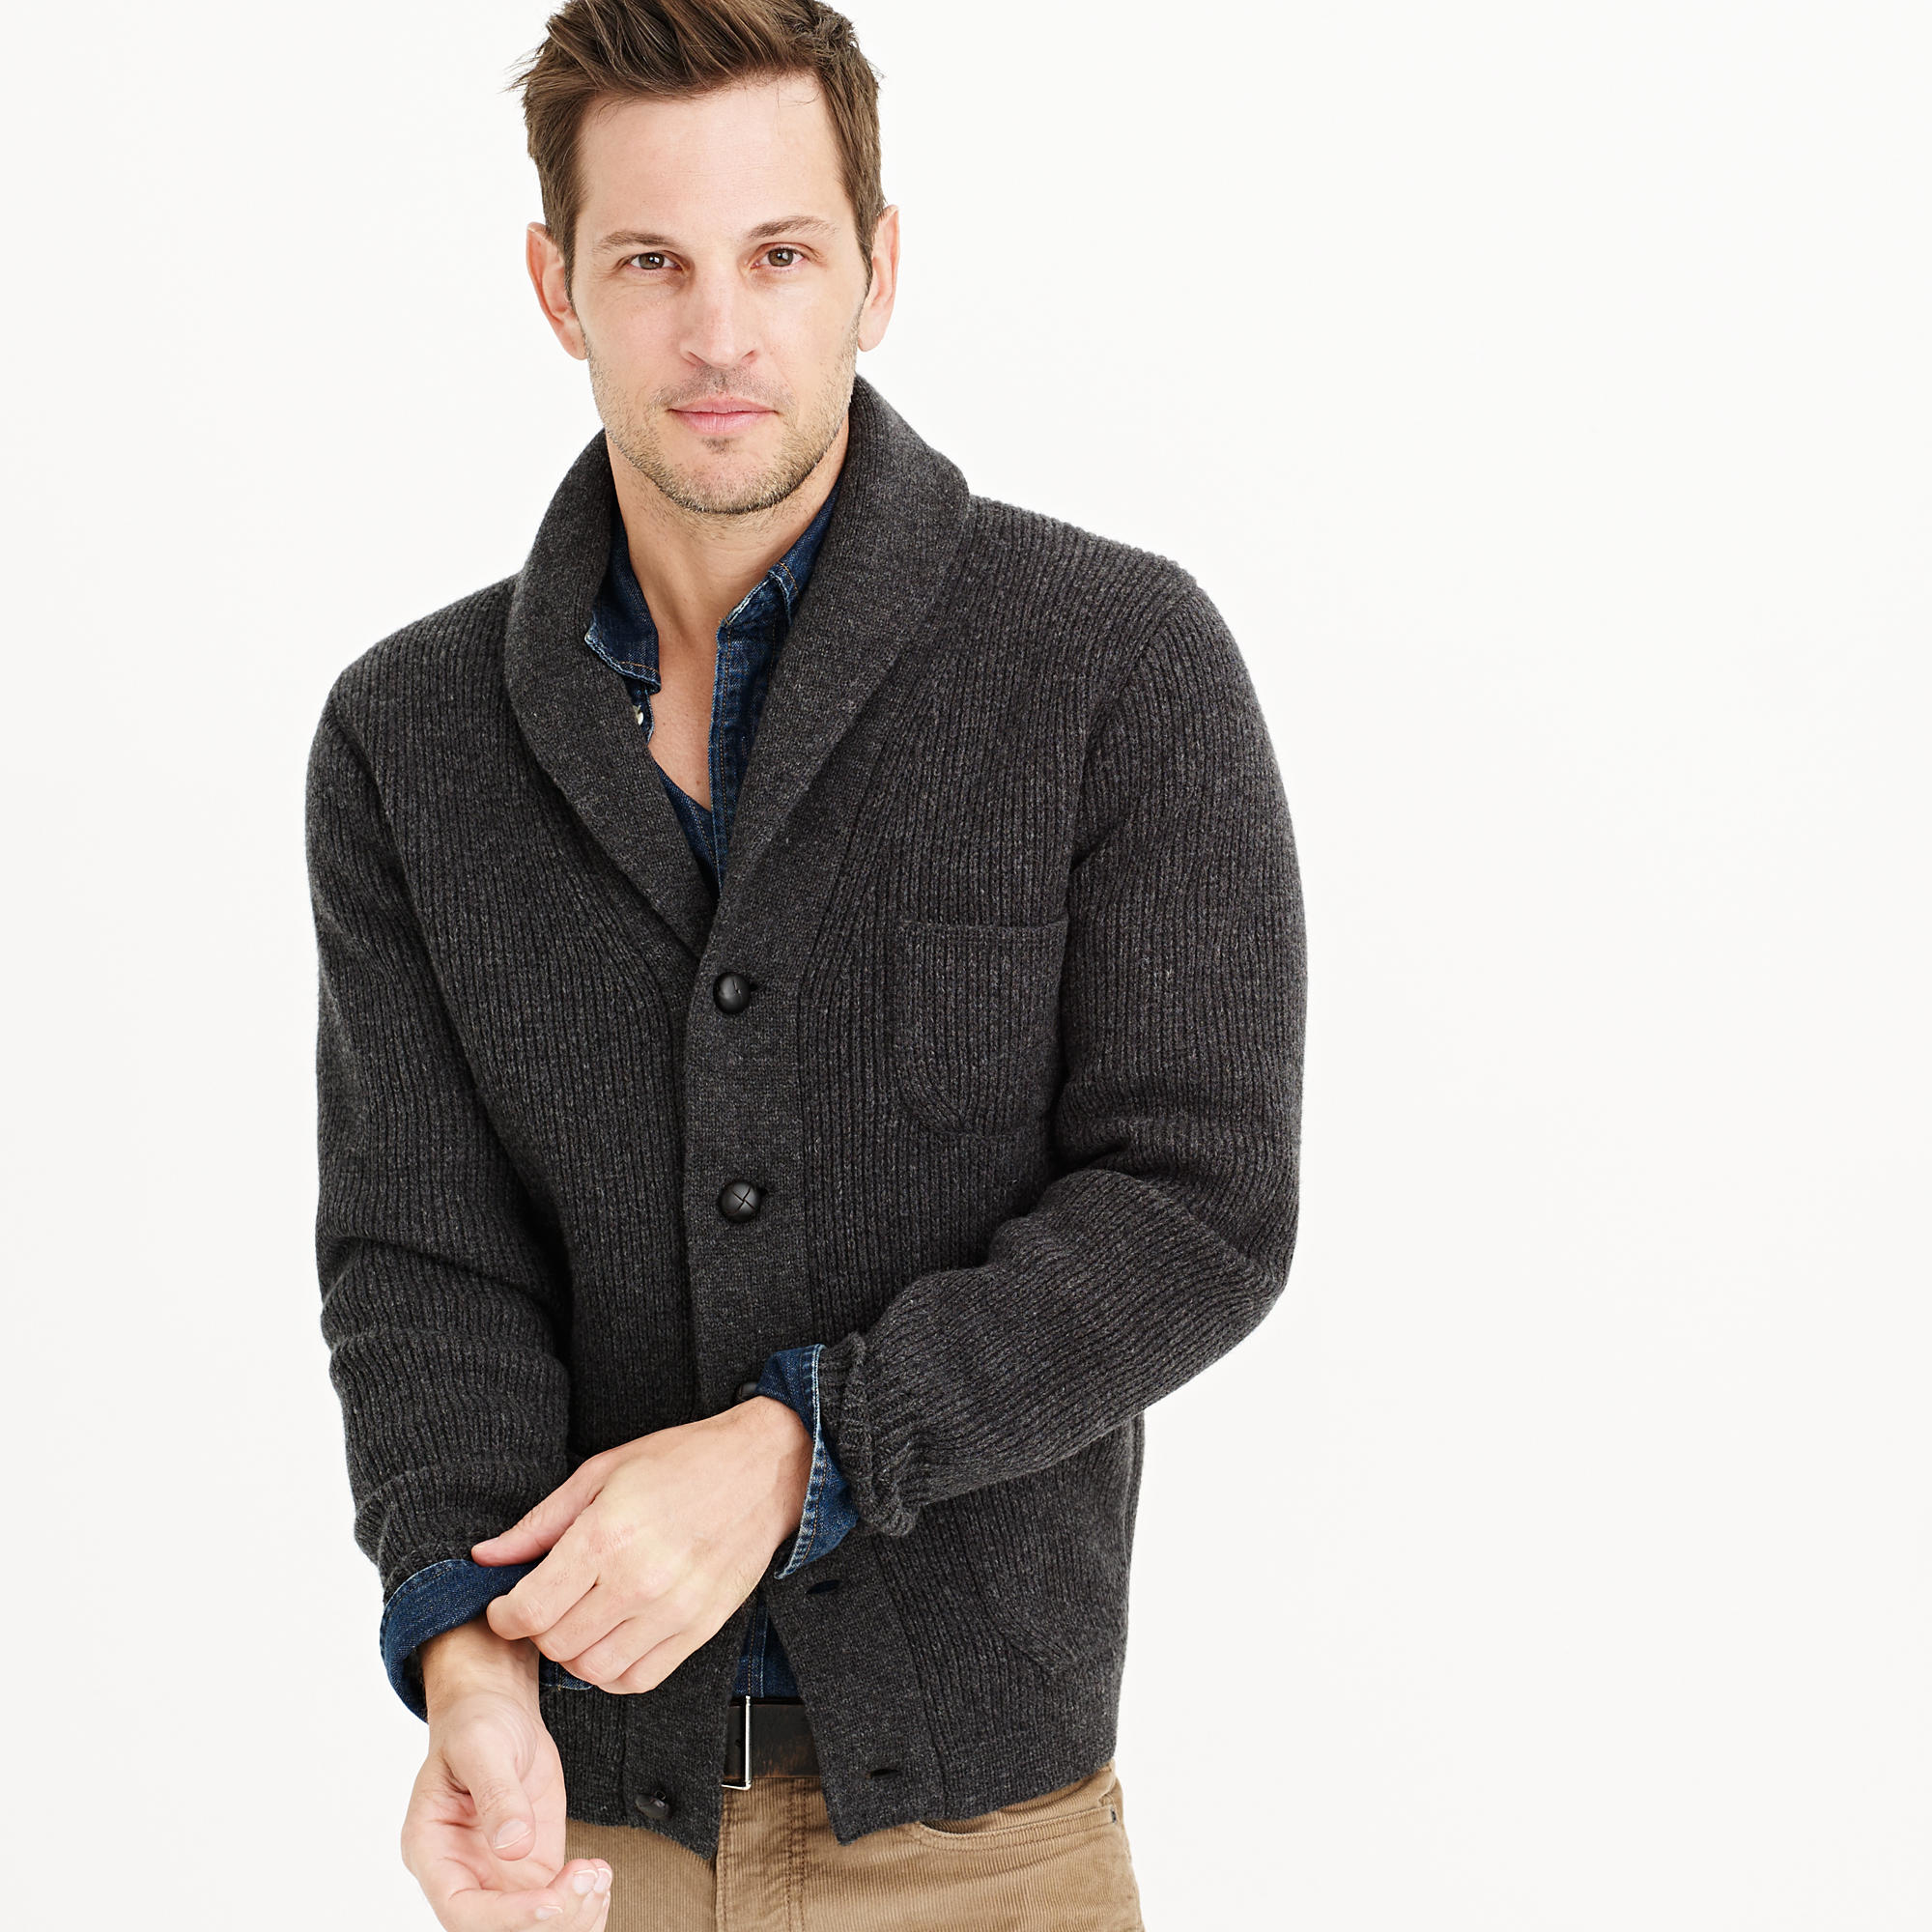 Shop our sweaters for men to stay warm year-round. Find a selection of cardigan sweaters in a variety of styles, including zip ups, cable knits, pullovers.